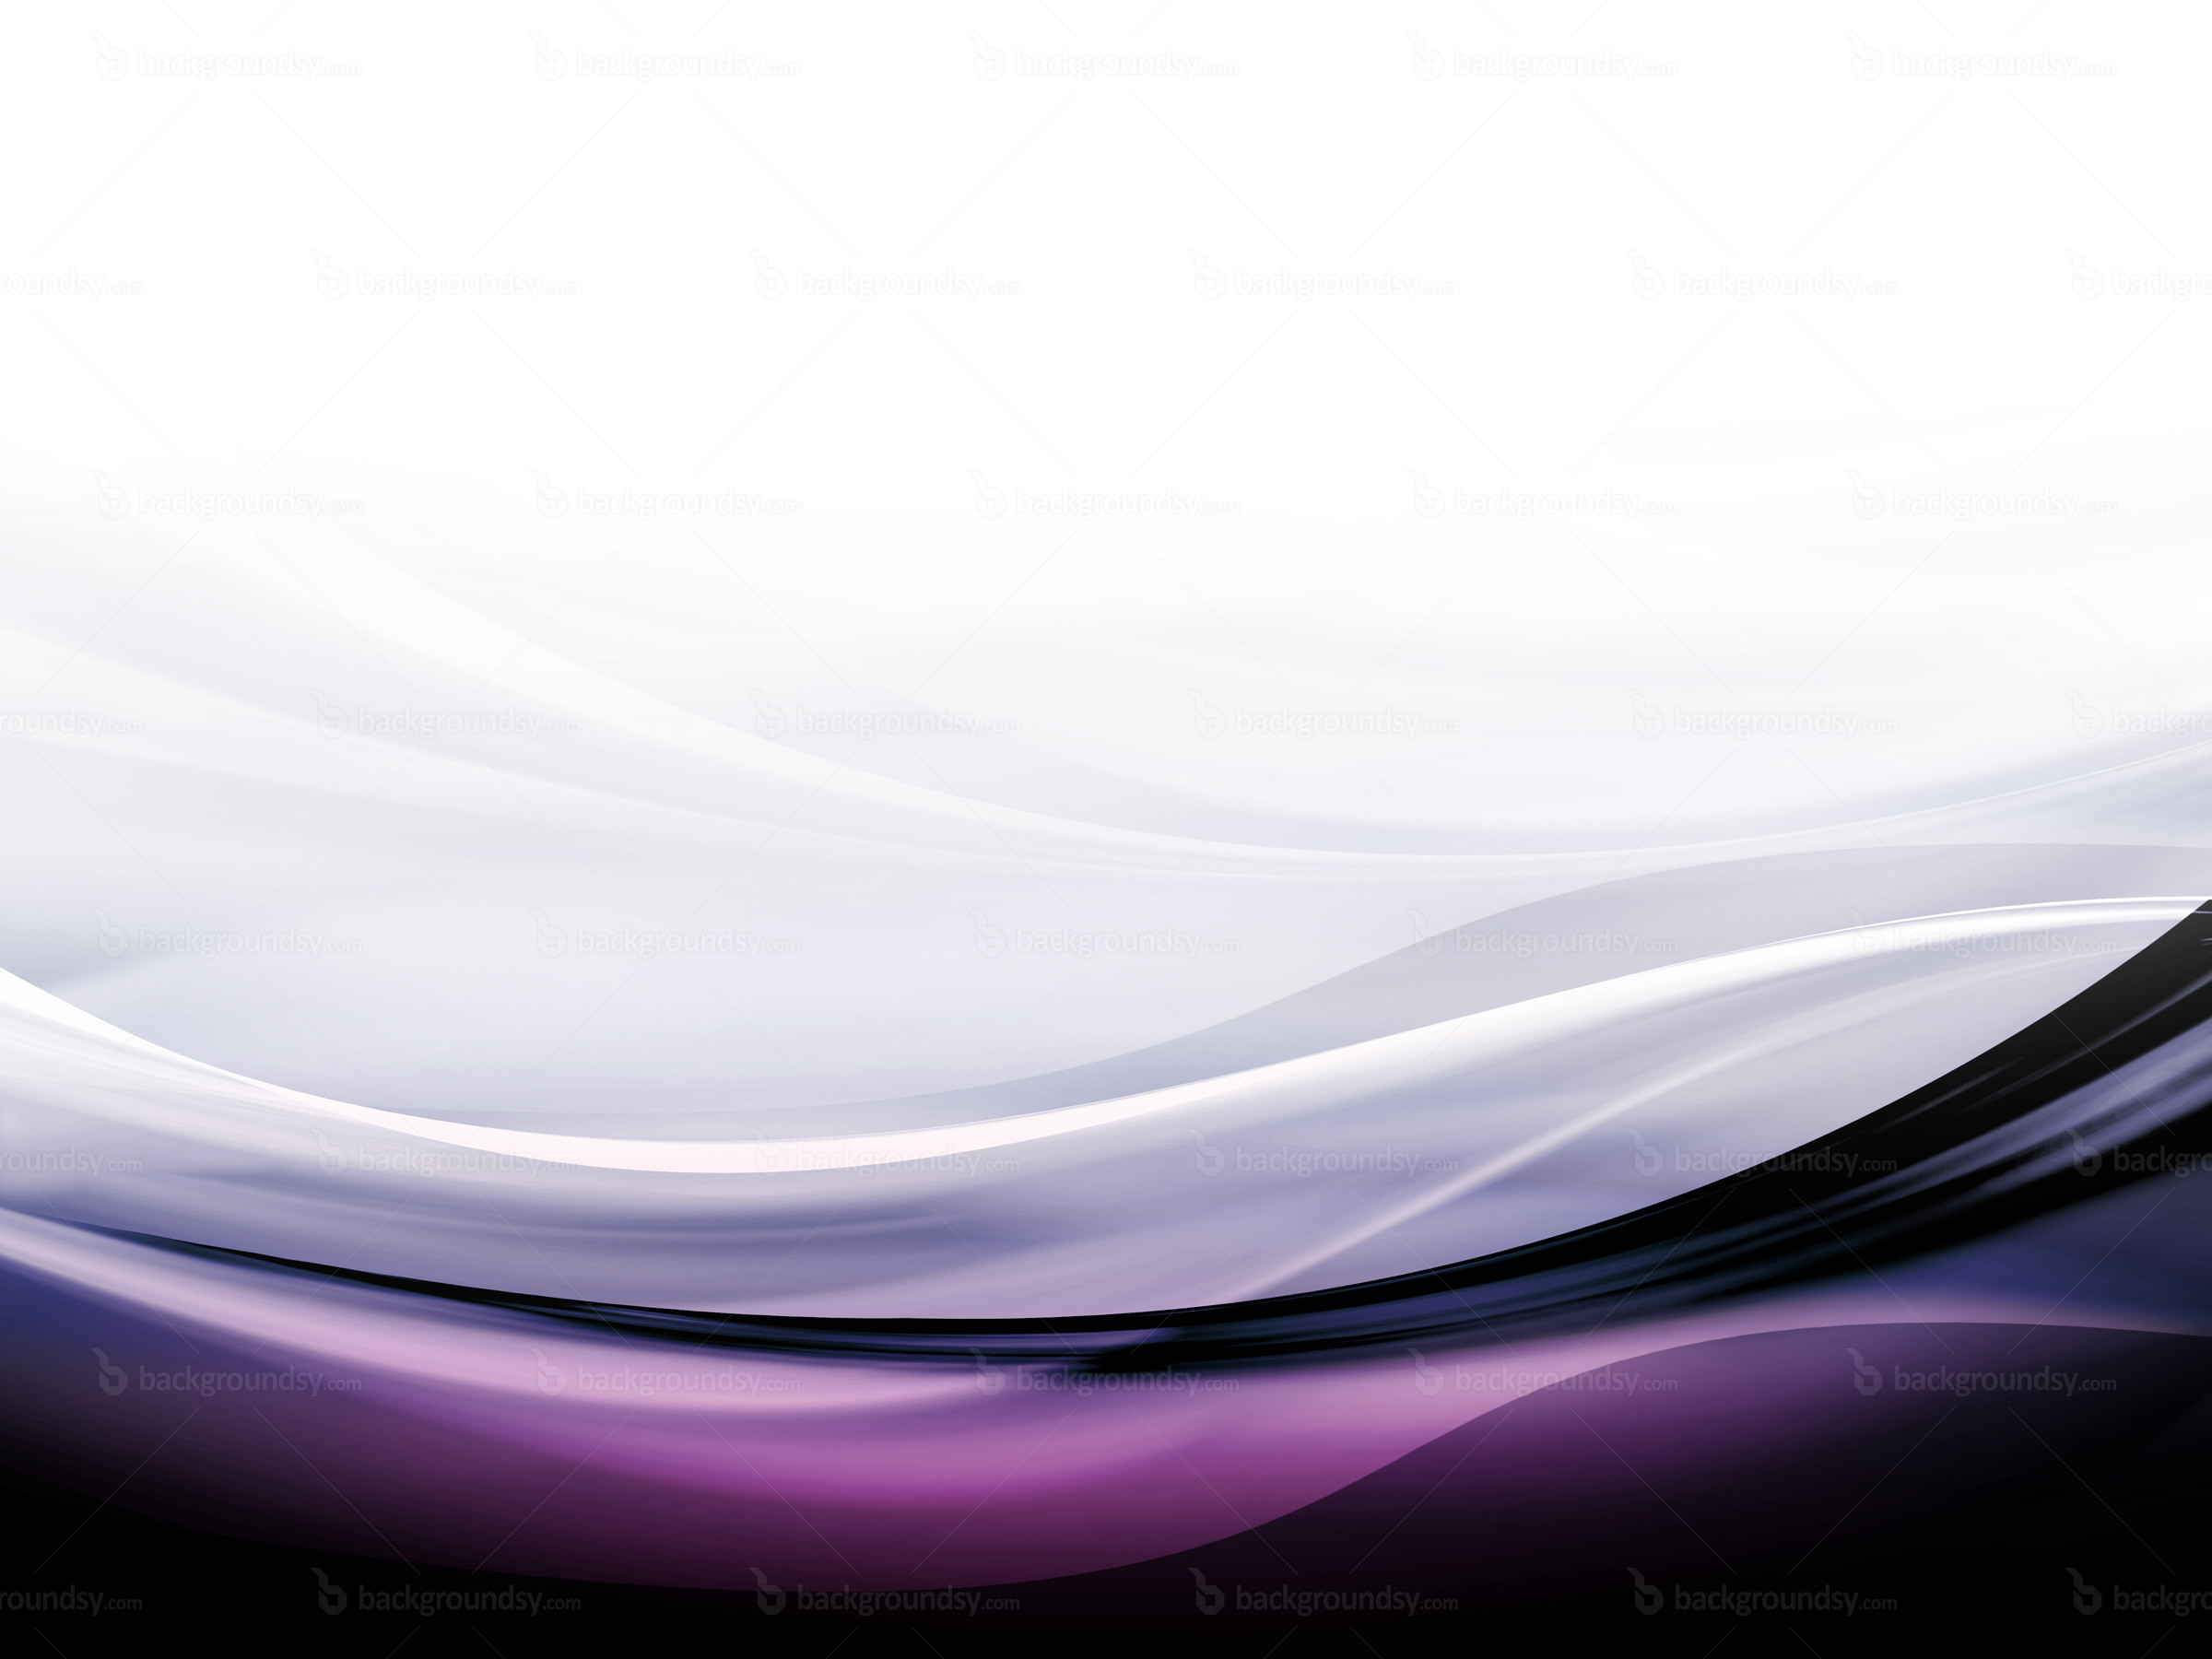 2400x1800 Abstract purple background | Backgroundsy.com